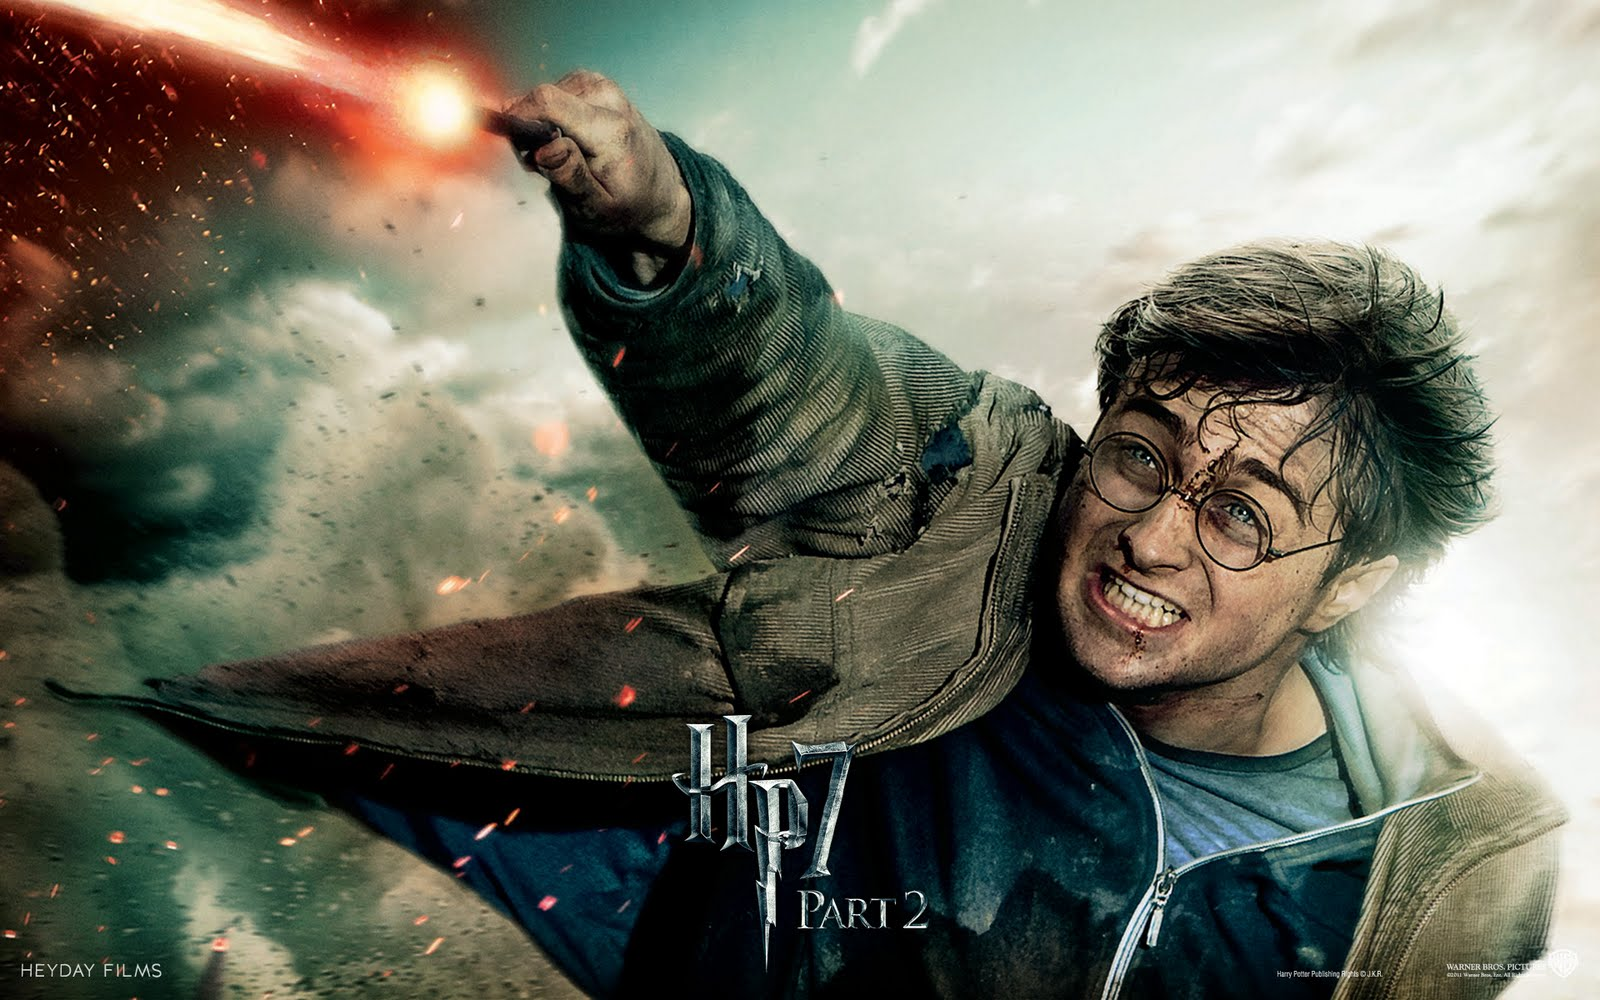 Download harry potter and the deathly hallows part 2 wallpapers harry potter and the deathly hallows part 2 wallpaper 4 toneelgroepblik Image collections